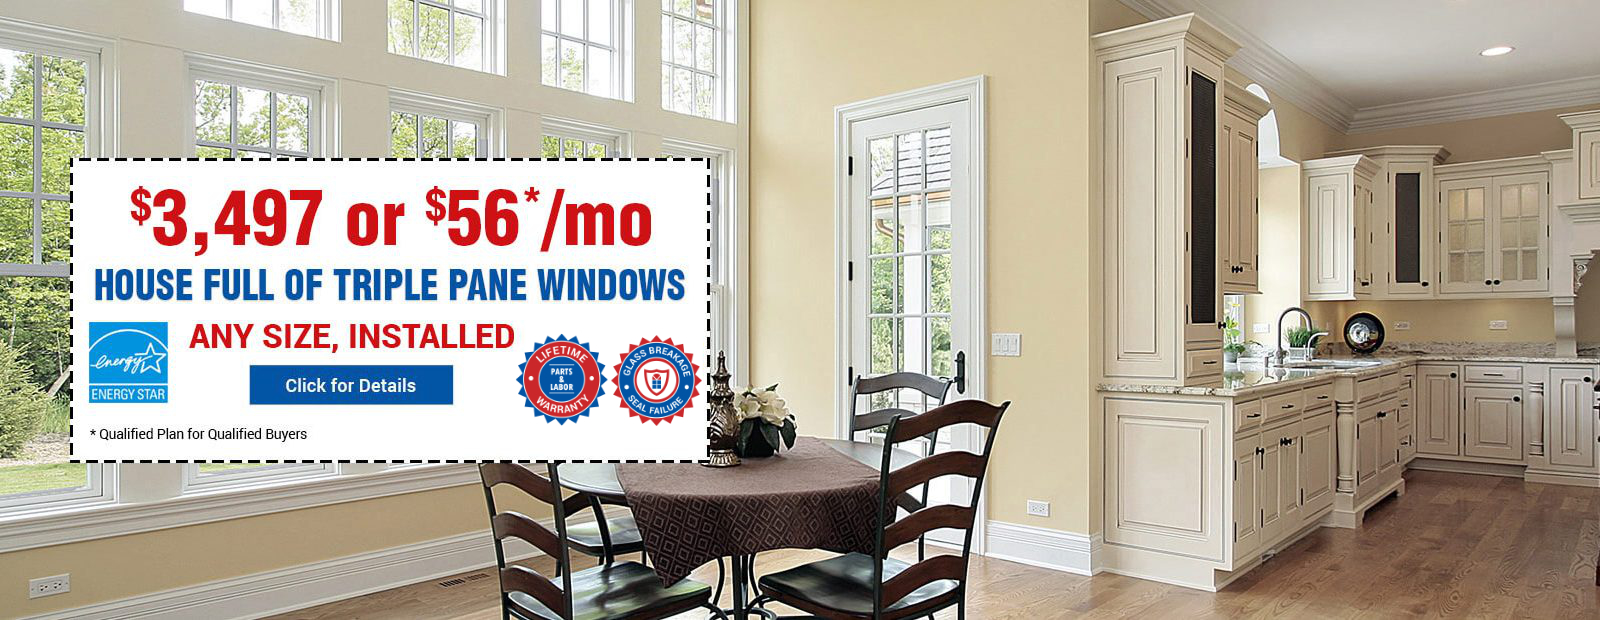 Triple Pane Windows at $3497